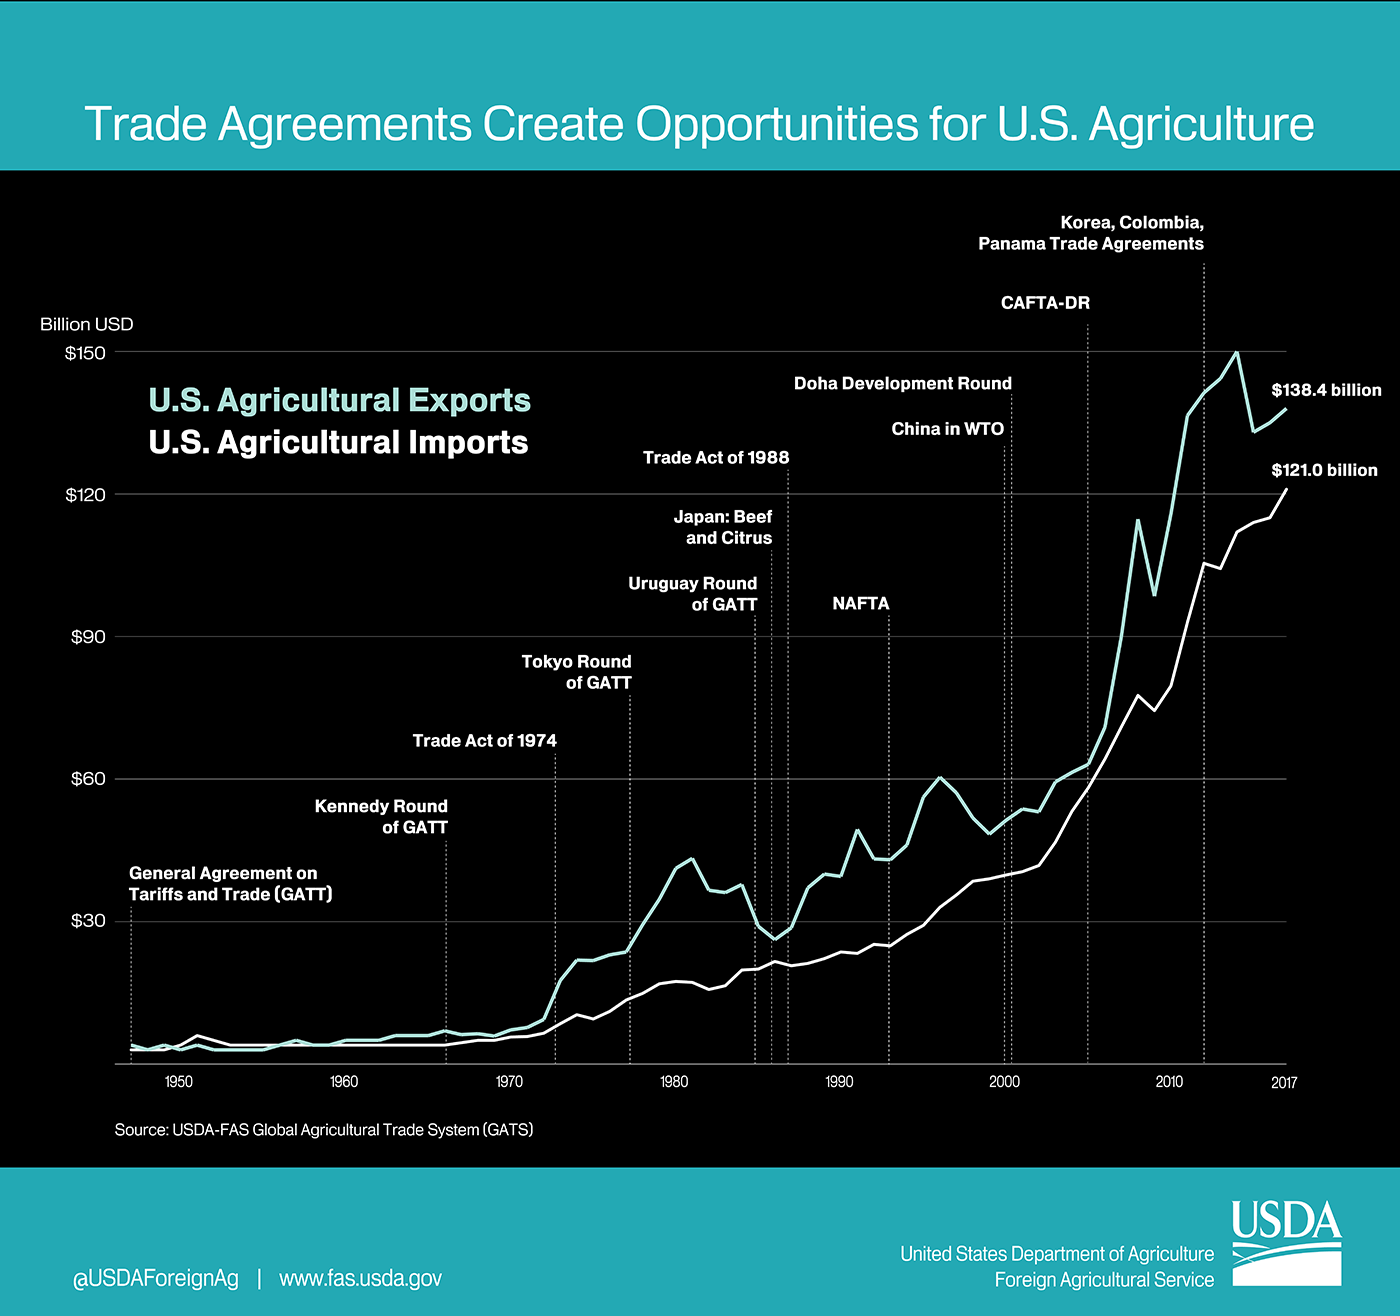 Trade Agreements Create Opportunities for U.S. Agriculture